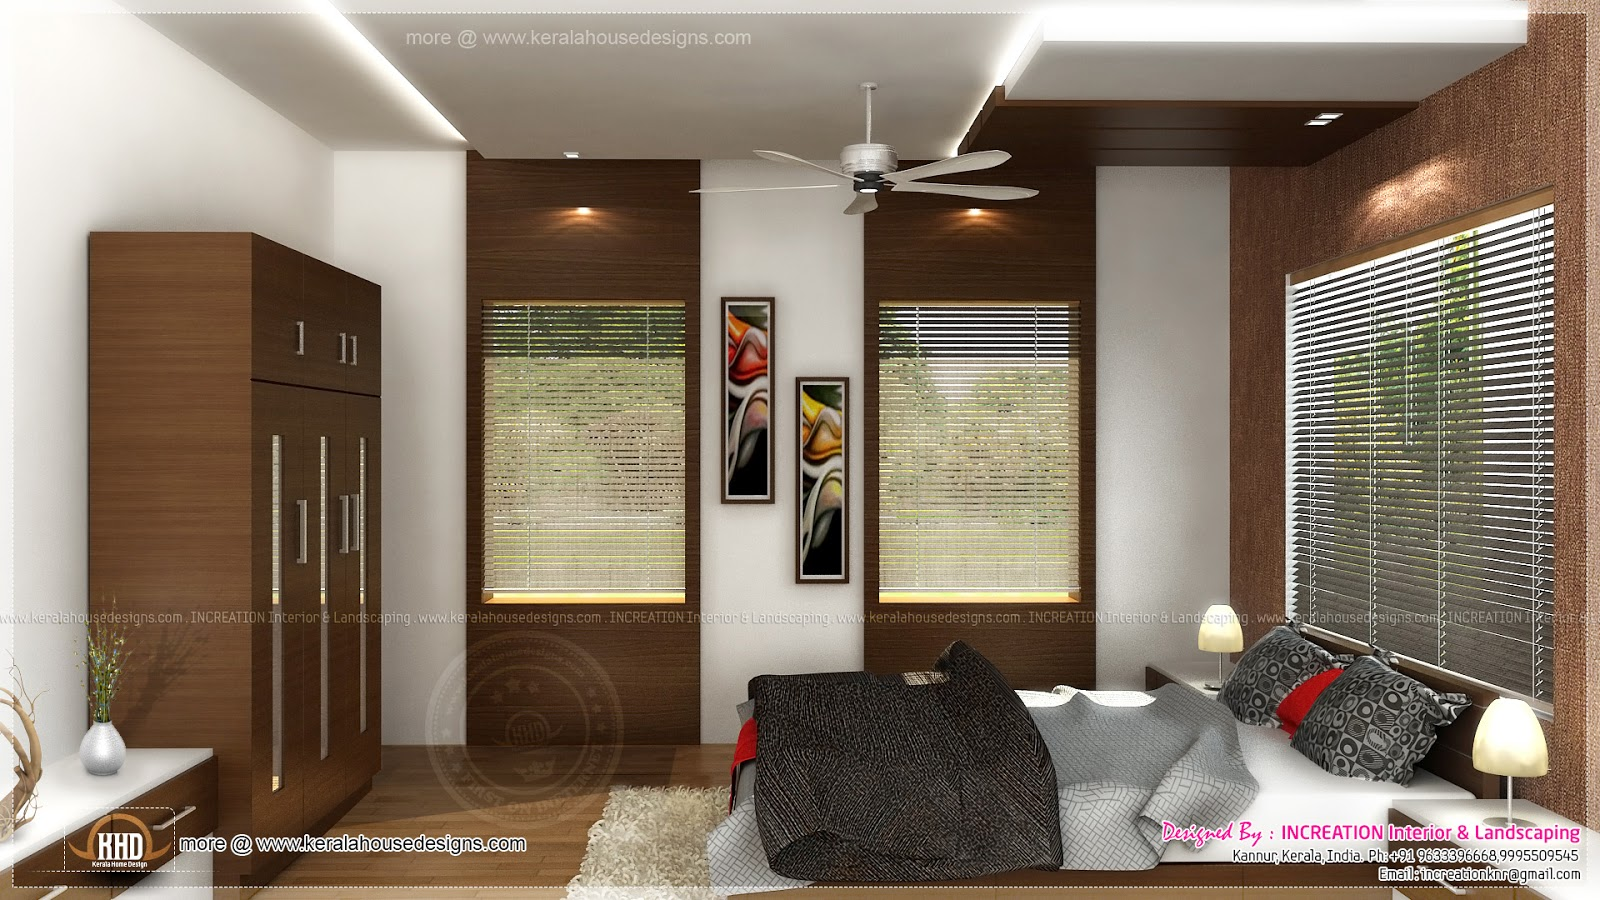 Interior designs from kannur kerala kerala home design and floor plans - Home design inside ...